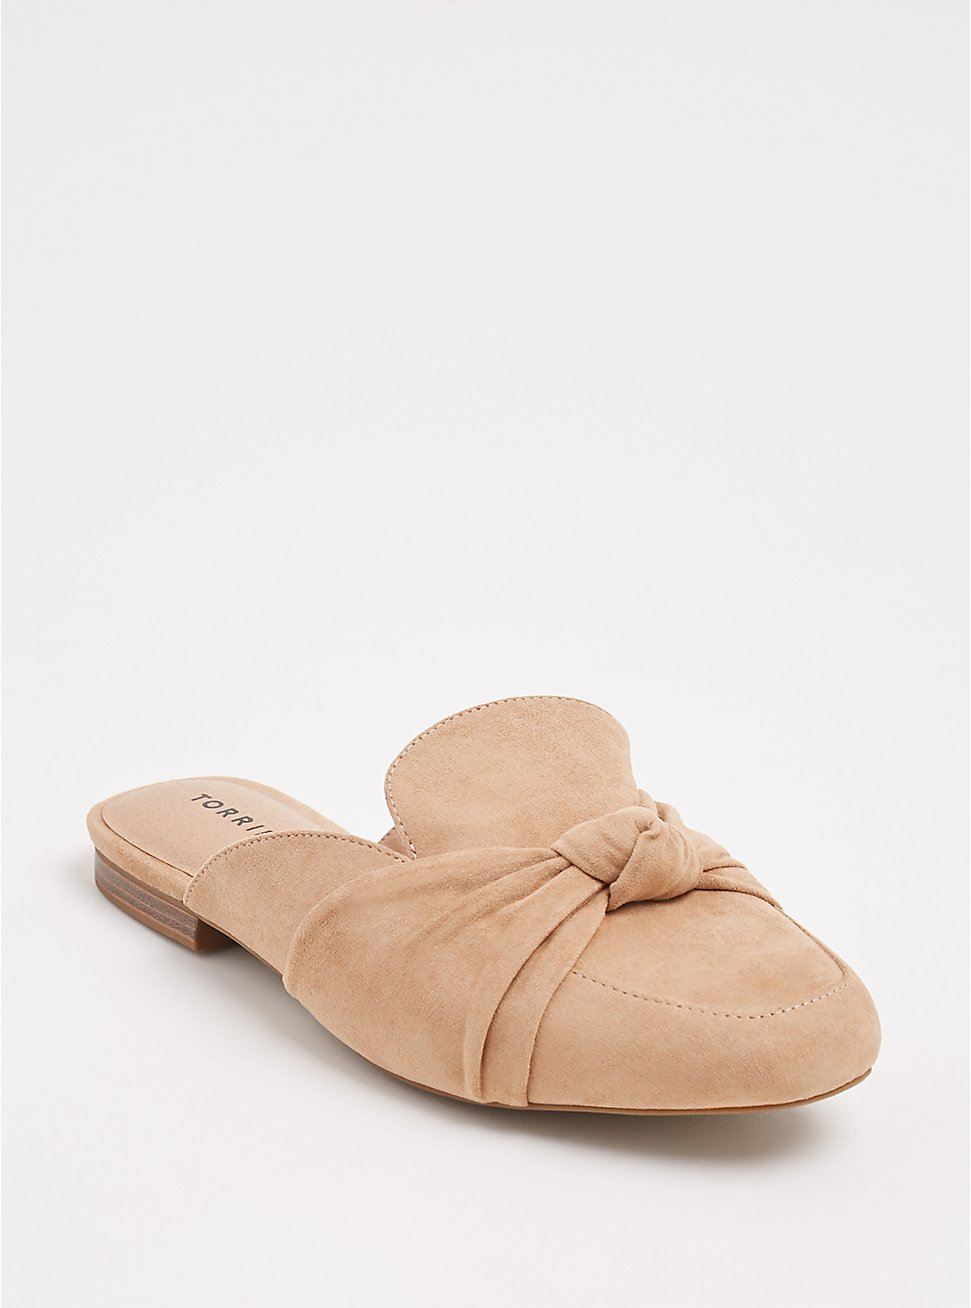 Tan Faux Suede Bow Loafer Mule (WW), YELLOW, hi-res